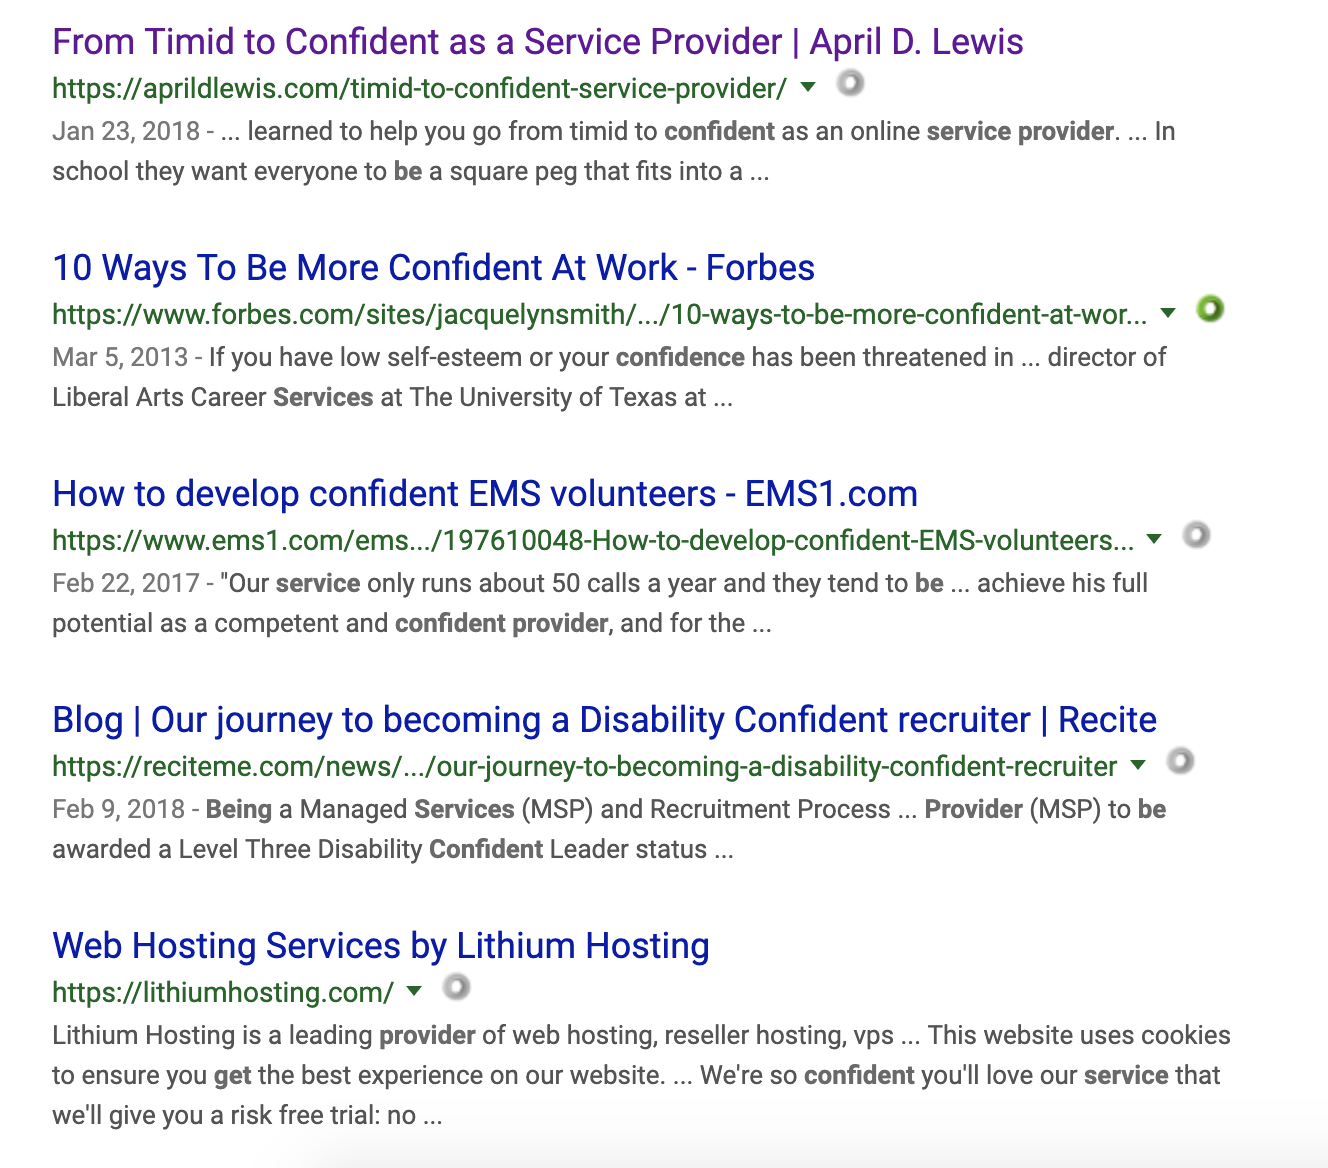 April Lewis ranks above Forbes in search results